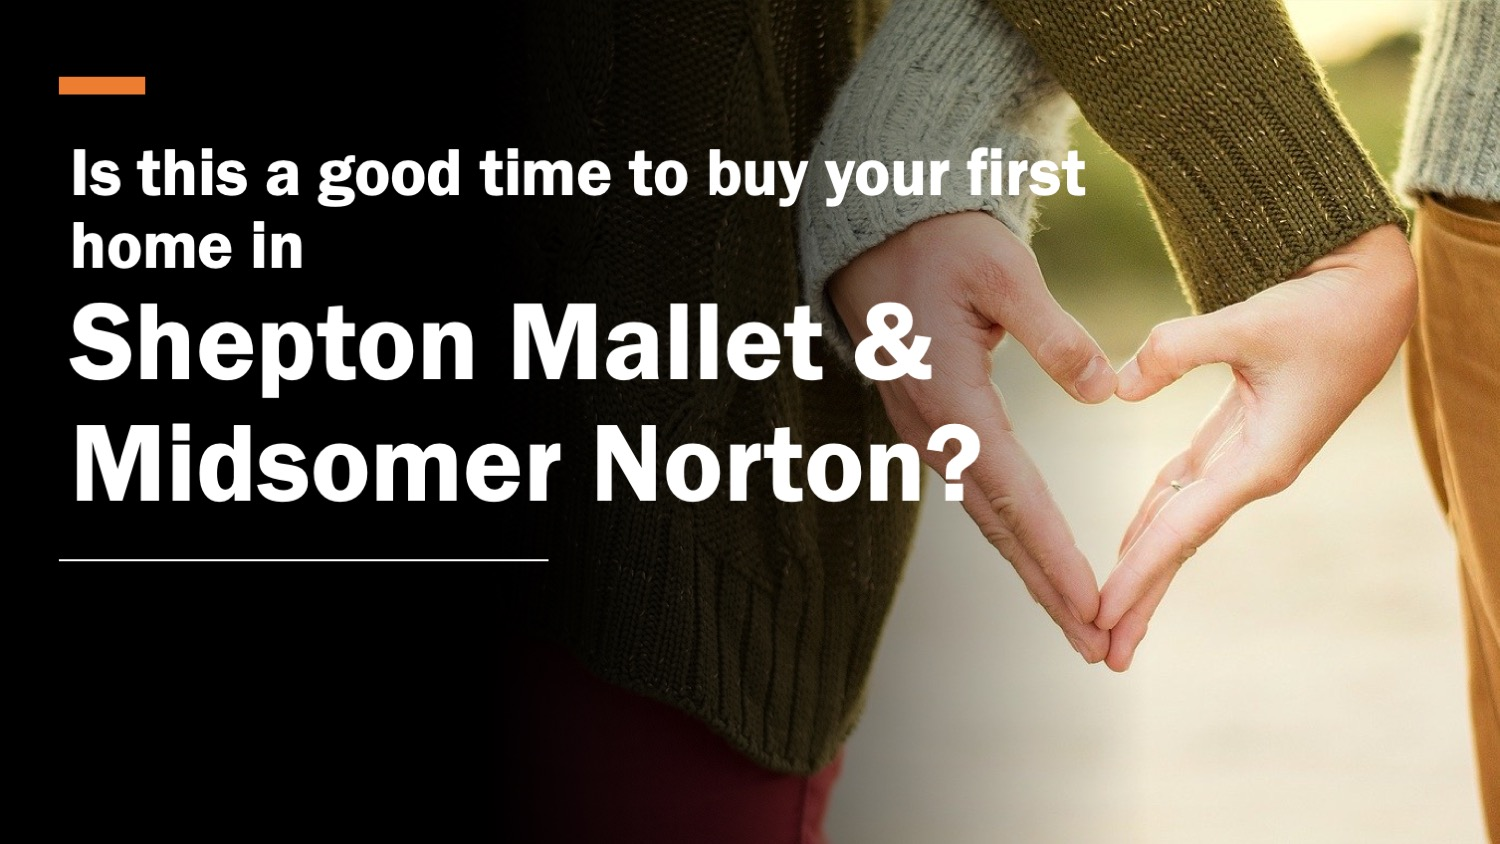 Is This A Good Time to Purchase your First Home in Shepton Mallet and Midsomer Norton?